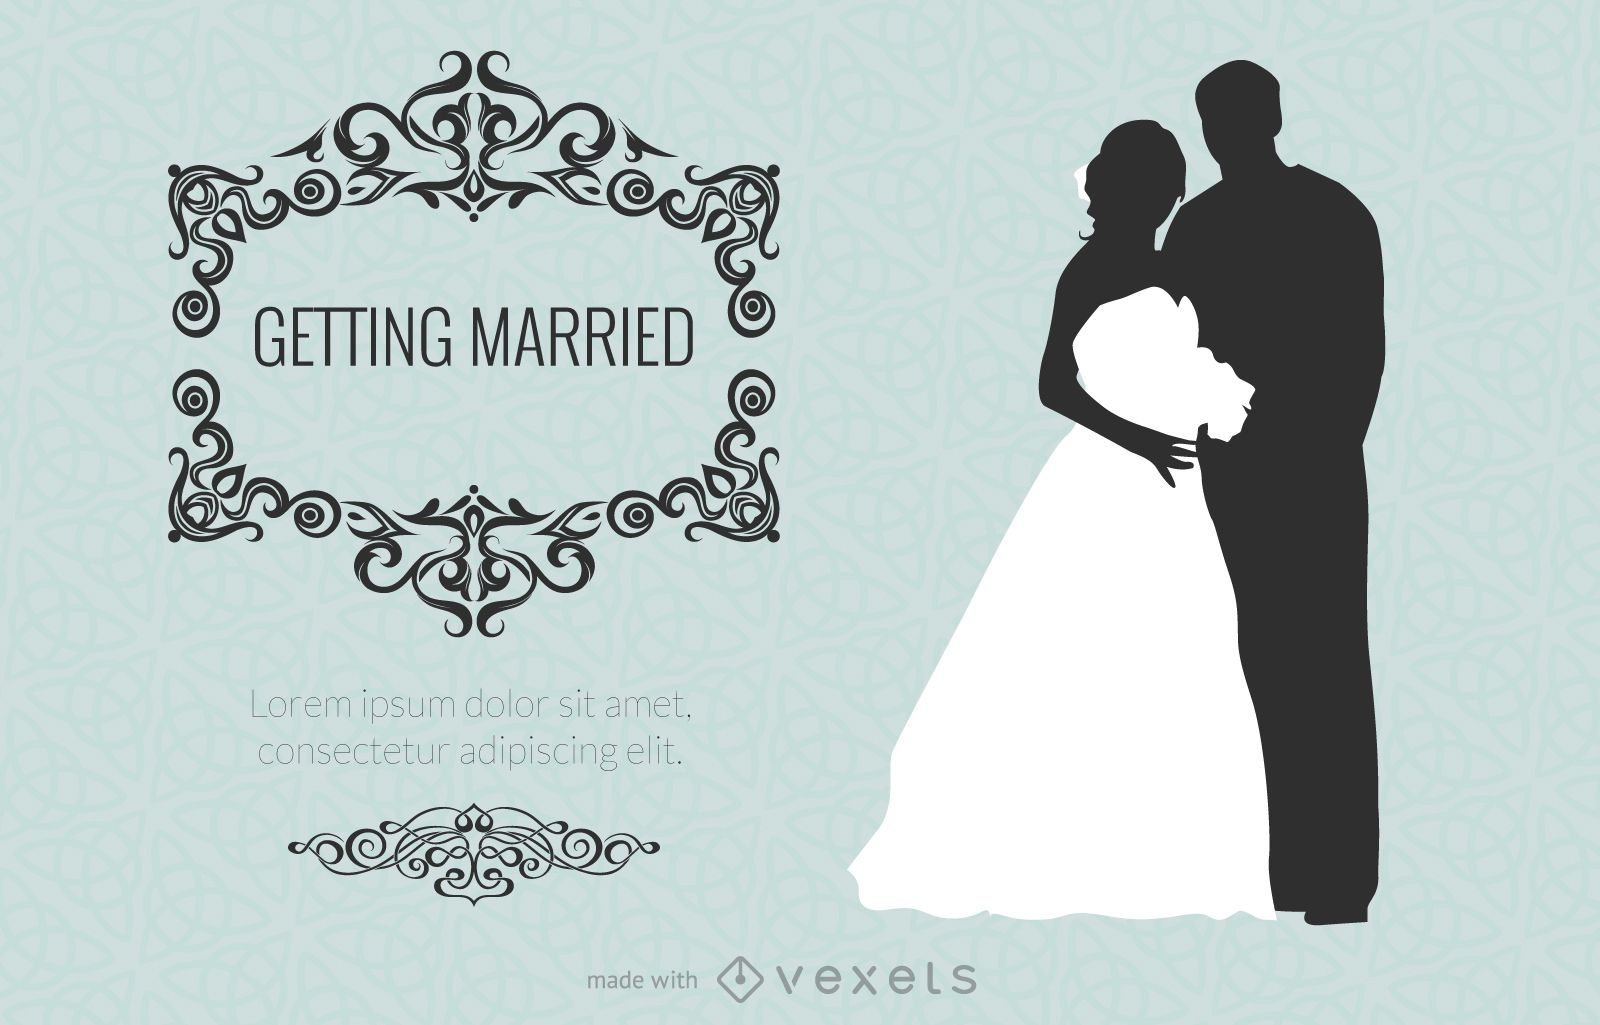 Wedding card maker design editable design wedding card maker design download large image 1600x1025px stopboris Image collections